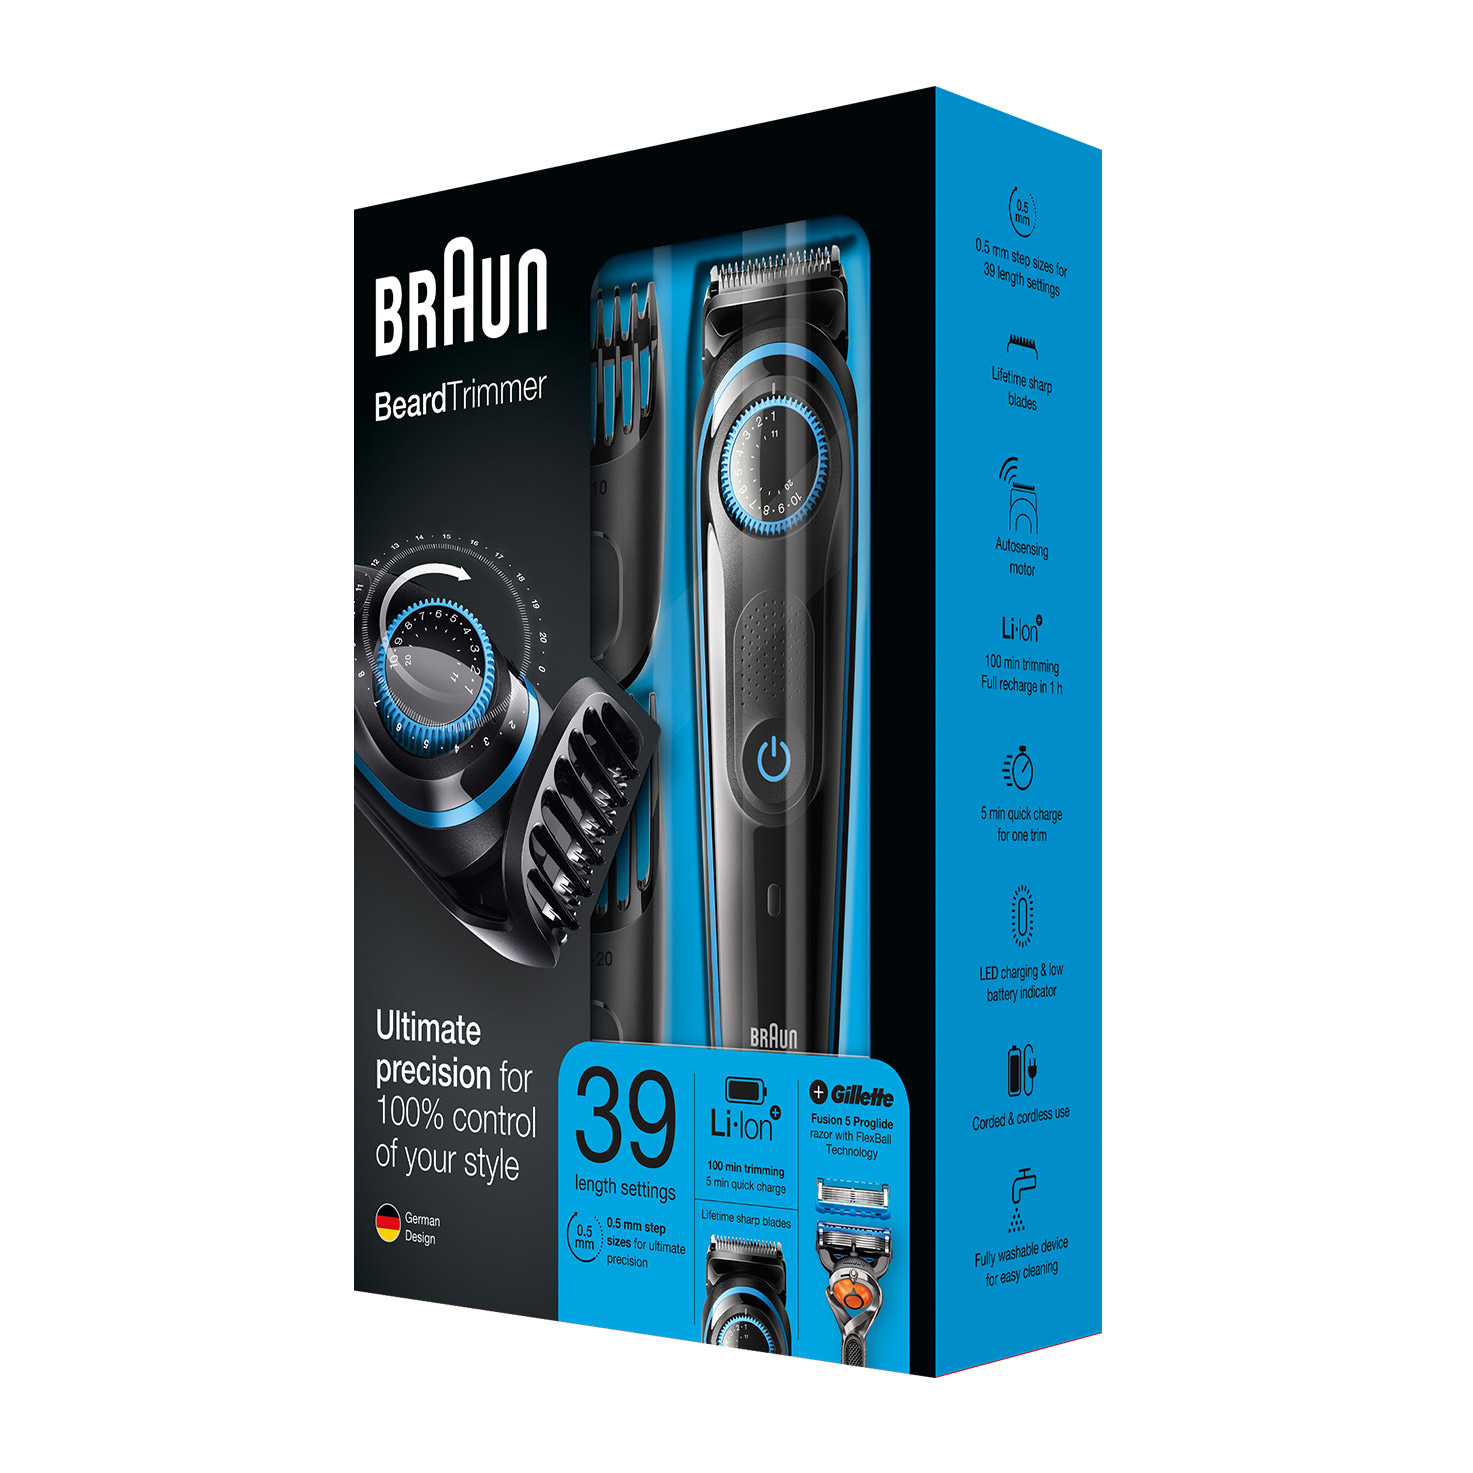 Braun BeardTrimmer BT5040 - Packaging